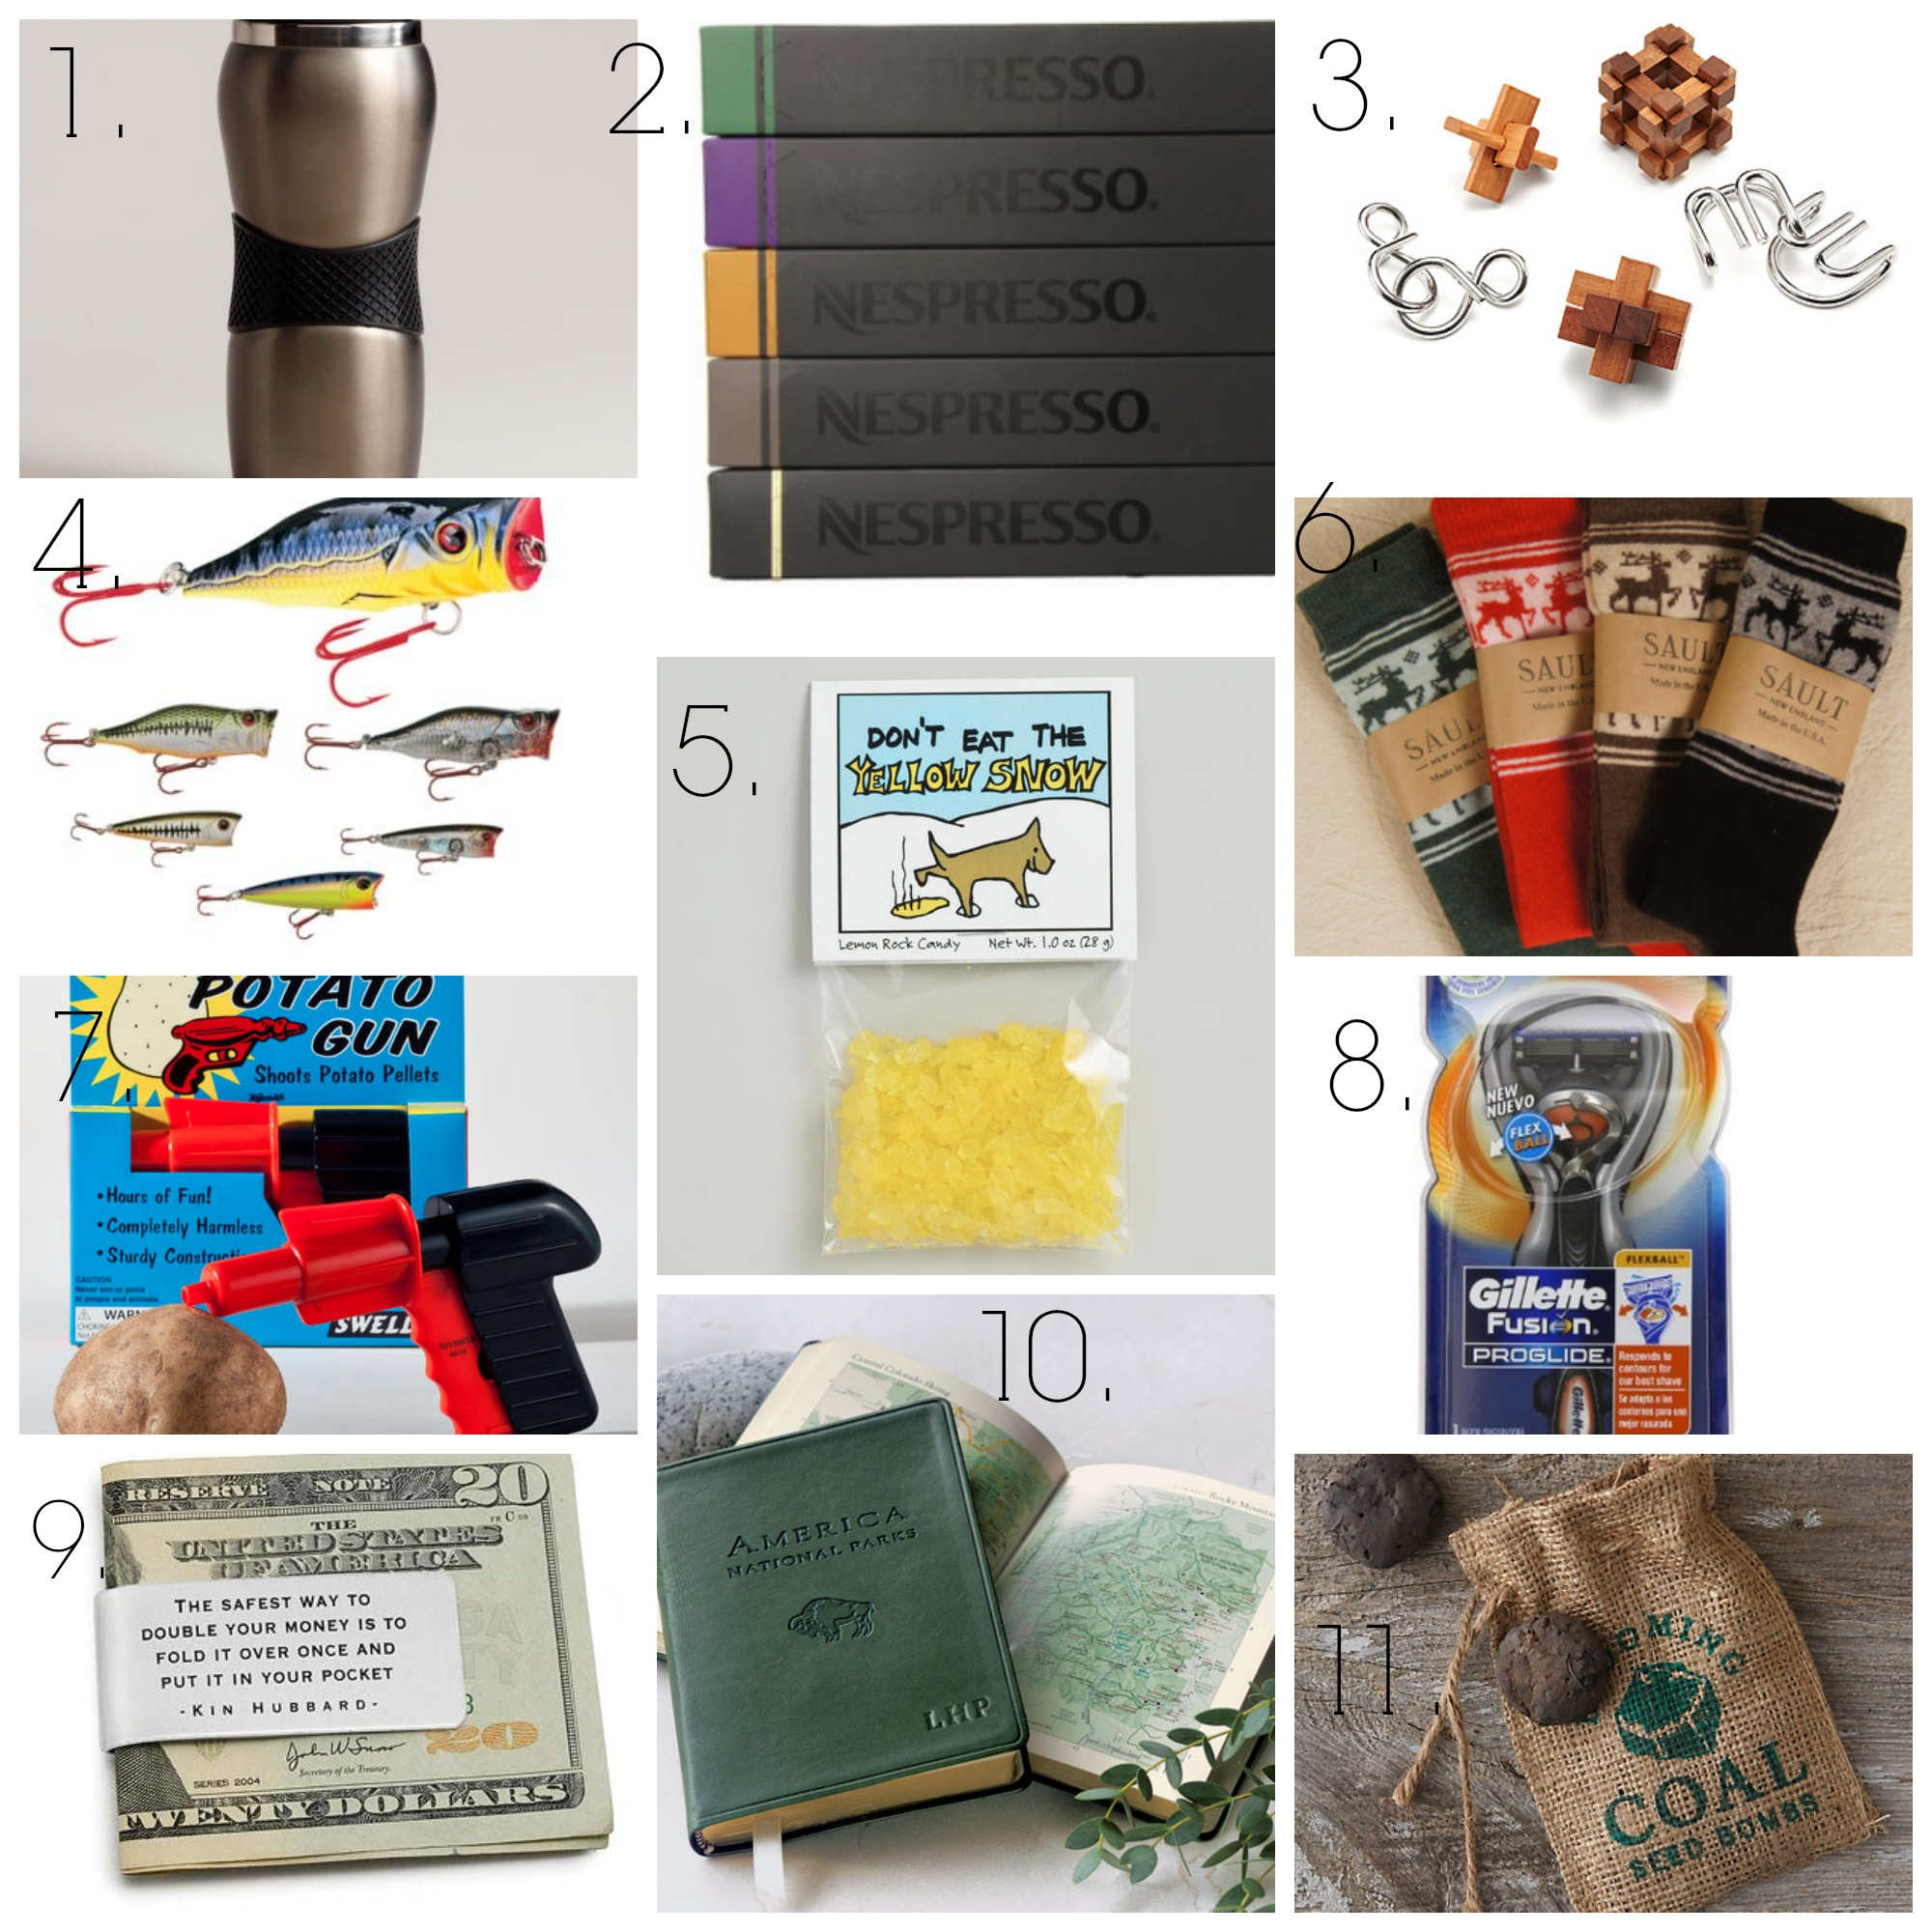 A gift guide full of great stocking stuffer ideas for the men in your life!